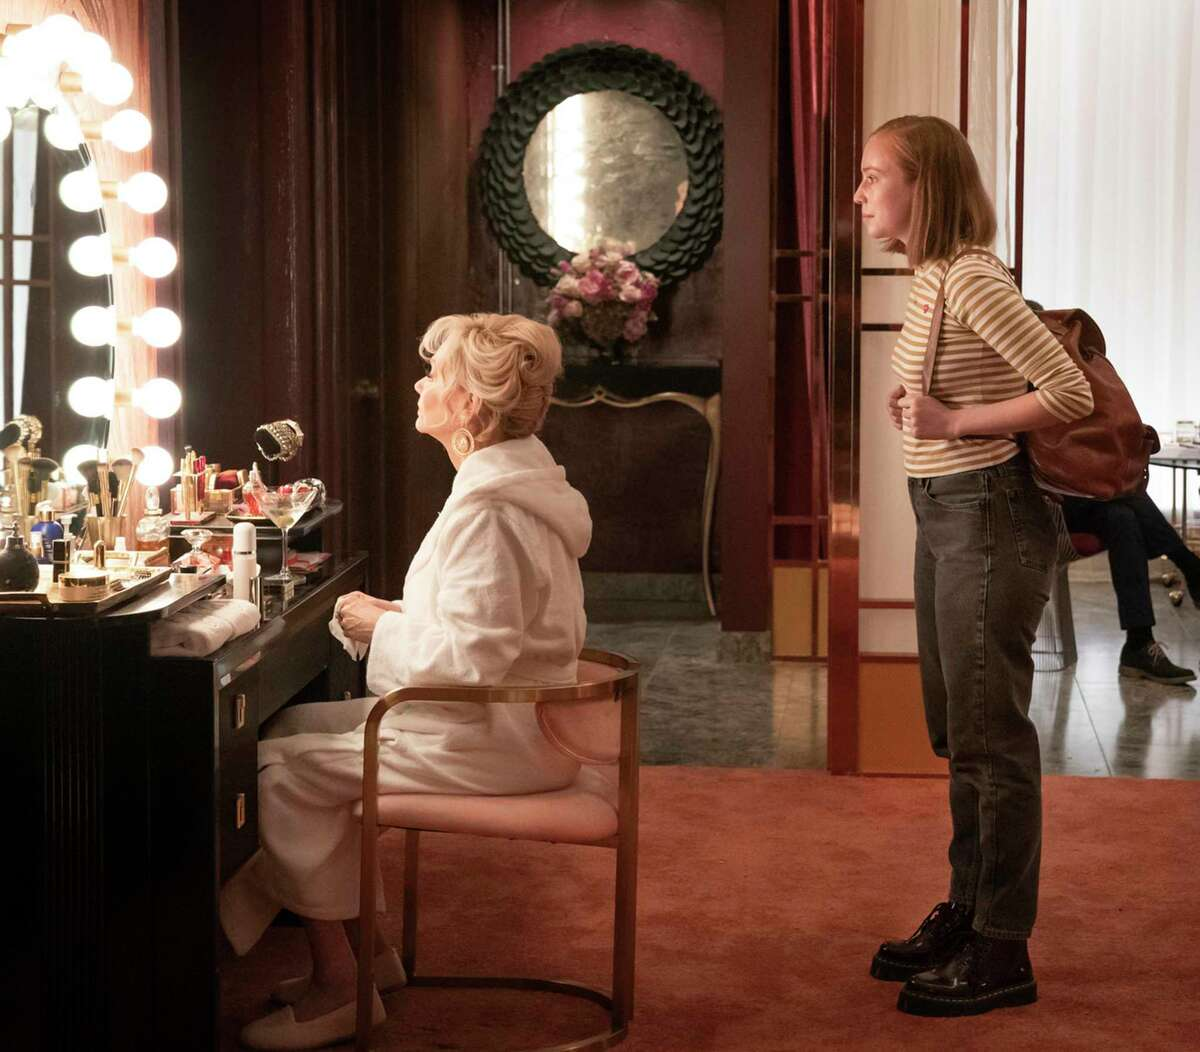 """Jean Smart (left) plays a Las Vegas stand-up comic forced to work with a young writer played by Hannah Einbinder on HBO Max's comedy, """"Hacks."""" (Jake Giles Netter/HBO Max/TNS)"""